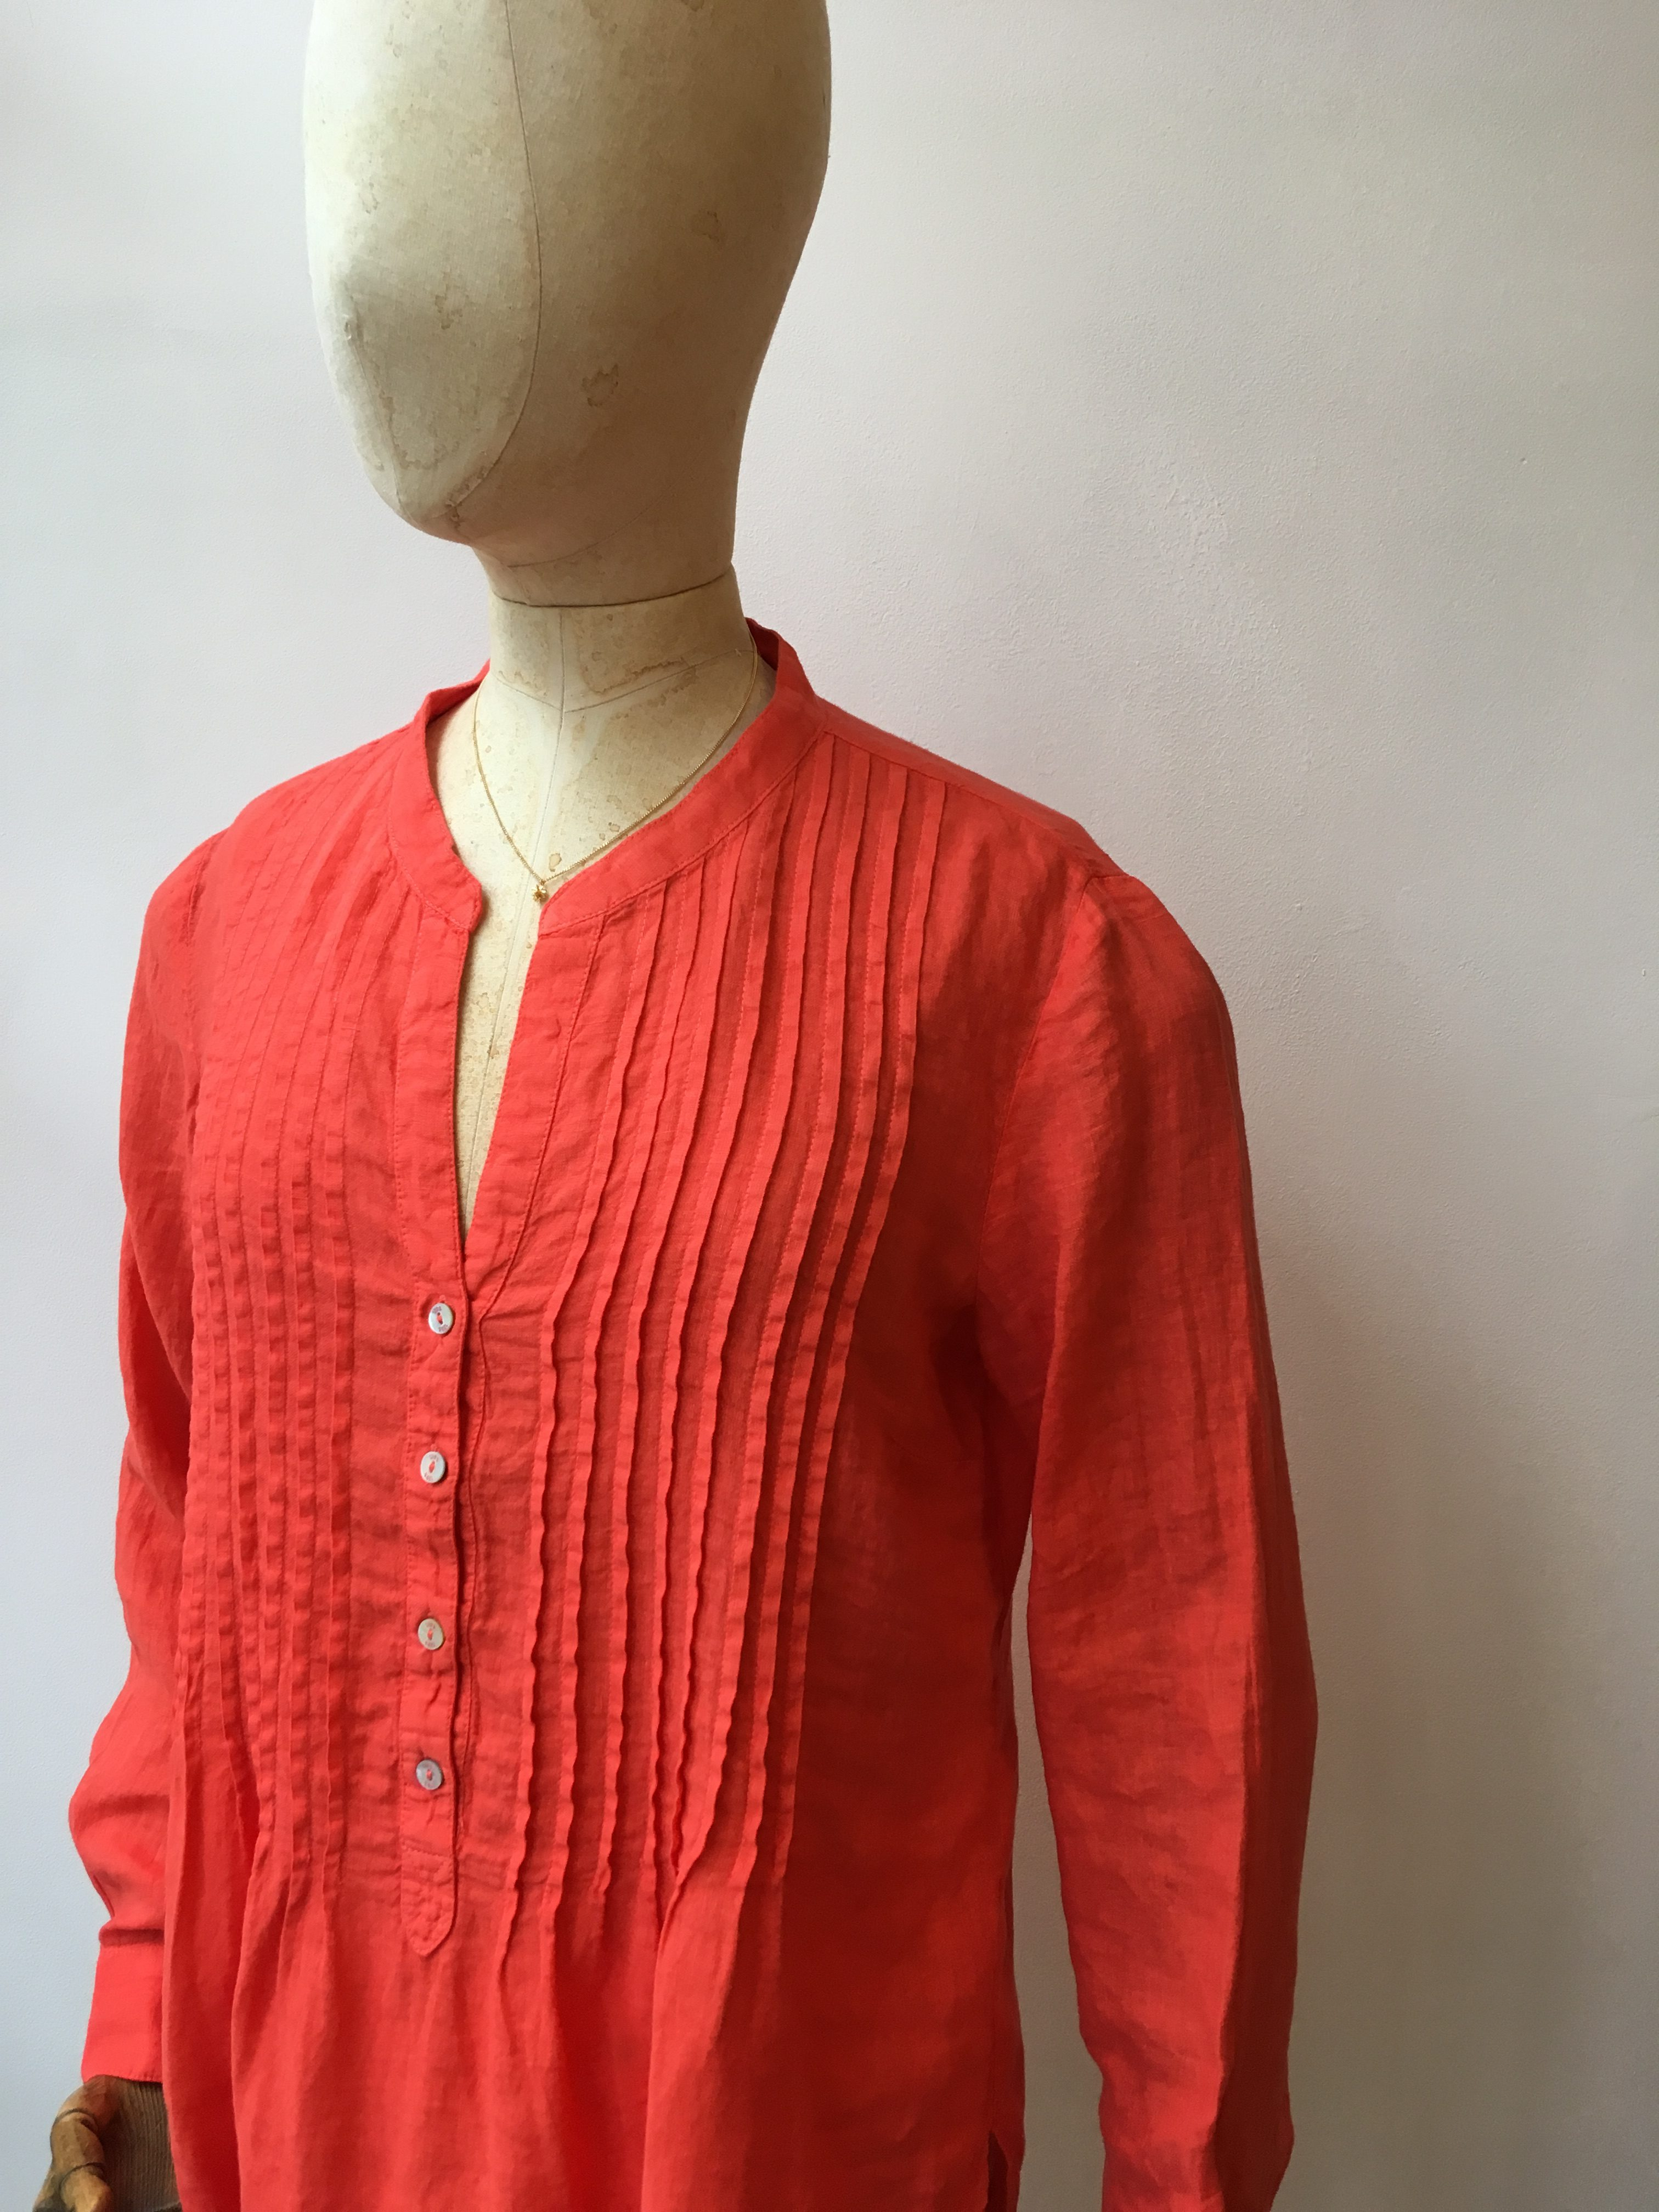 120% Lino Classic Pintuck Shirt in Grenadine